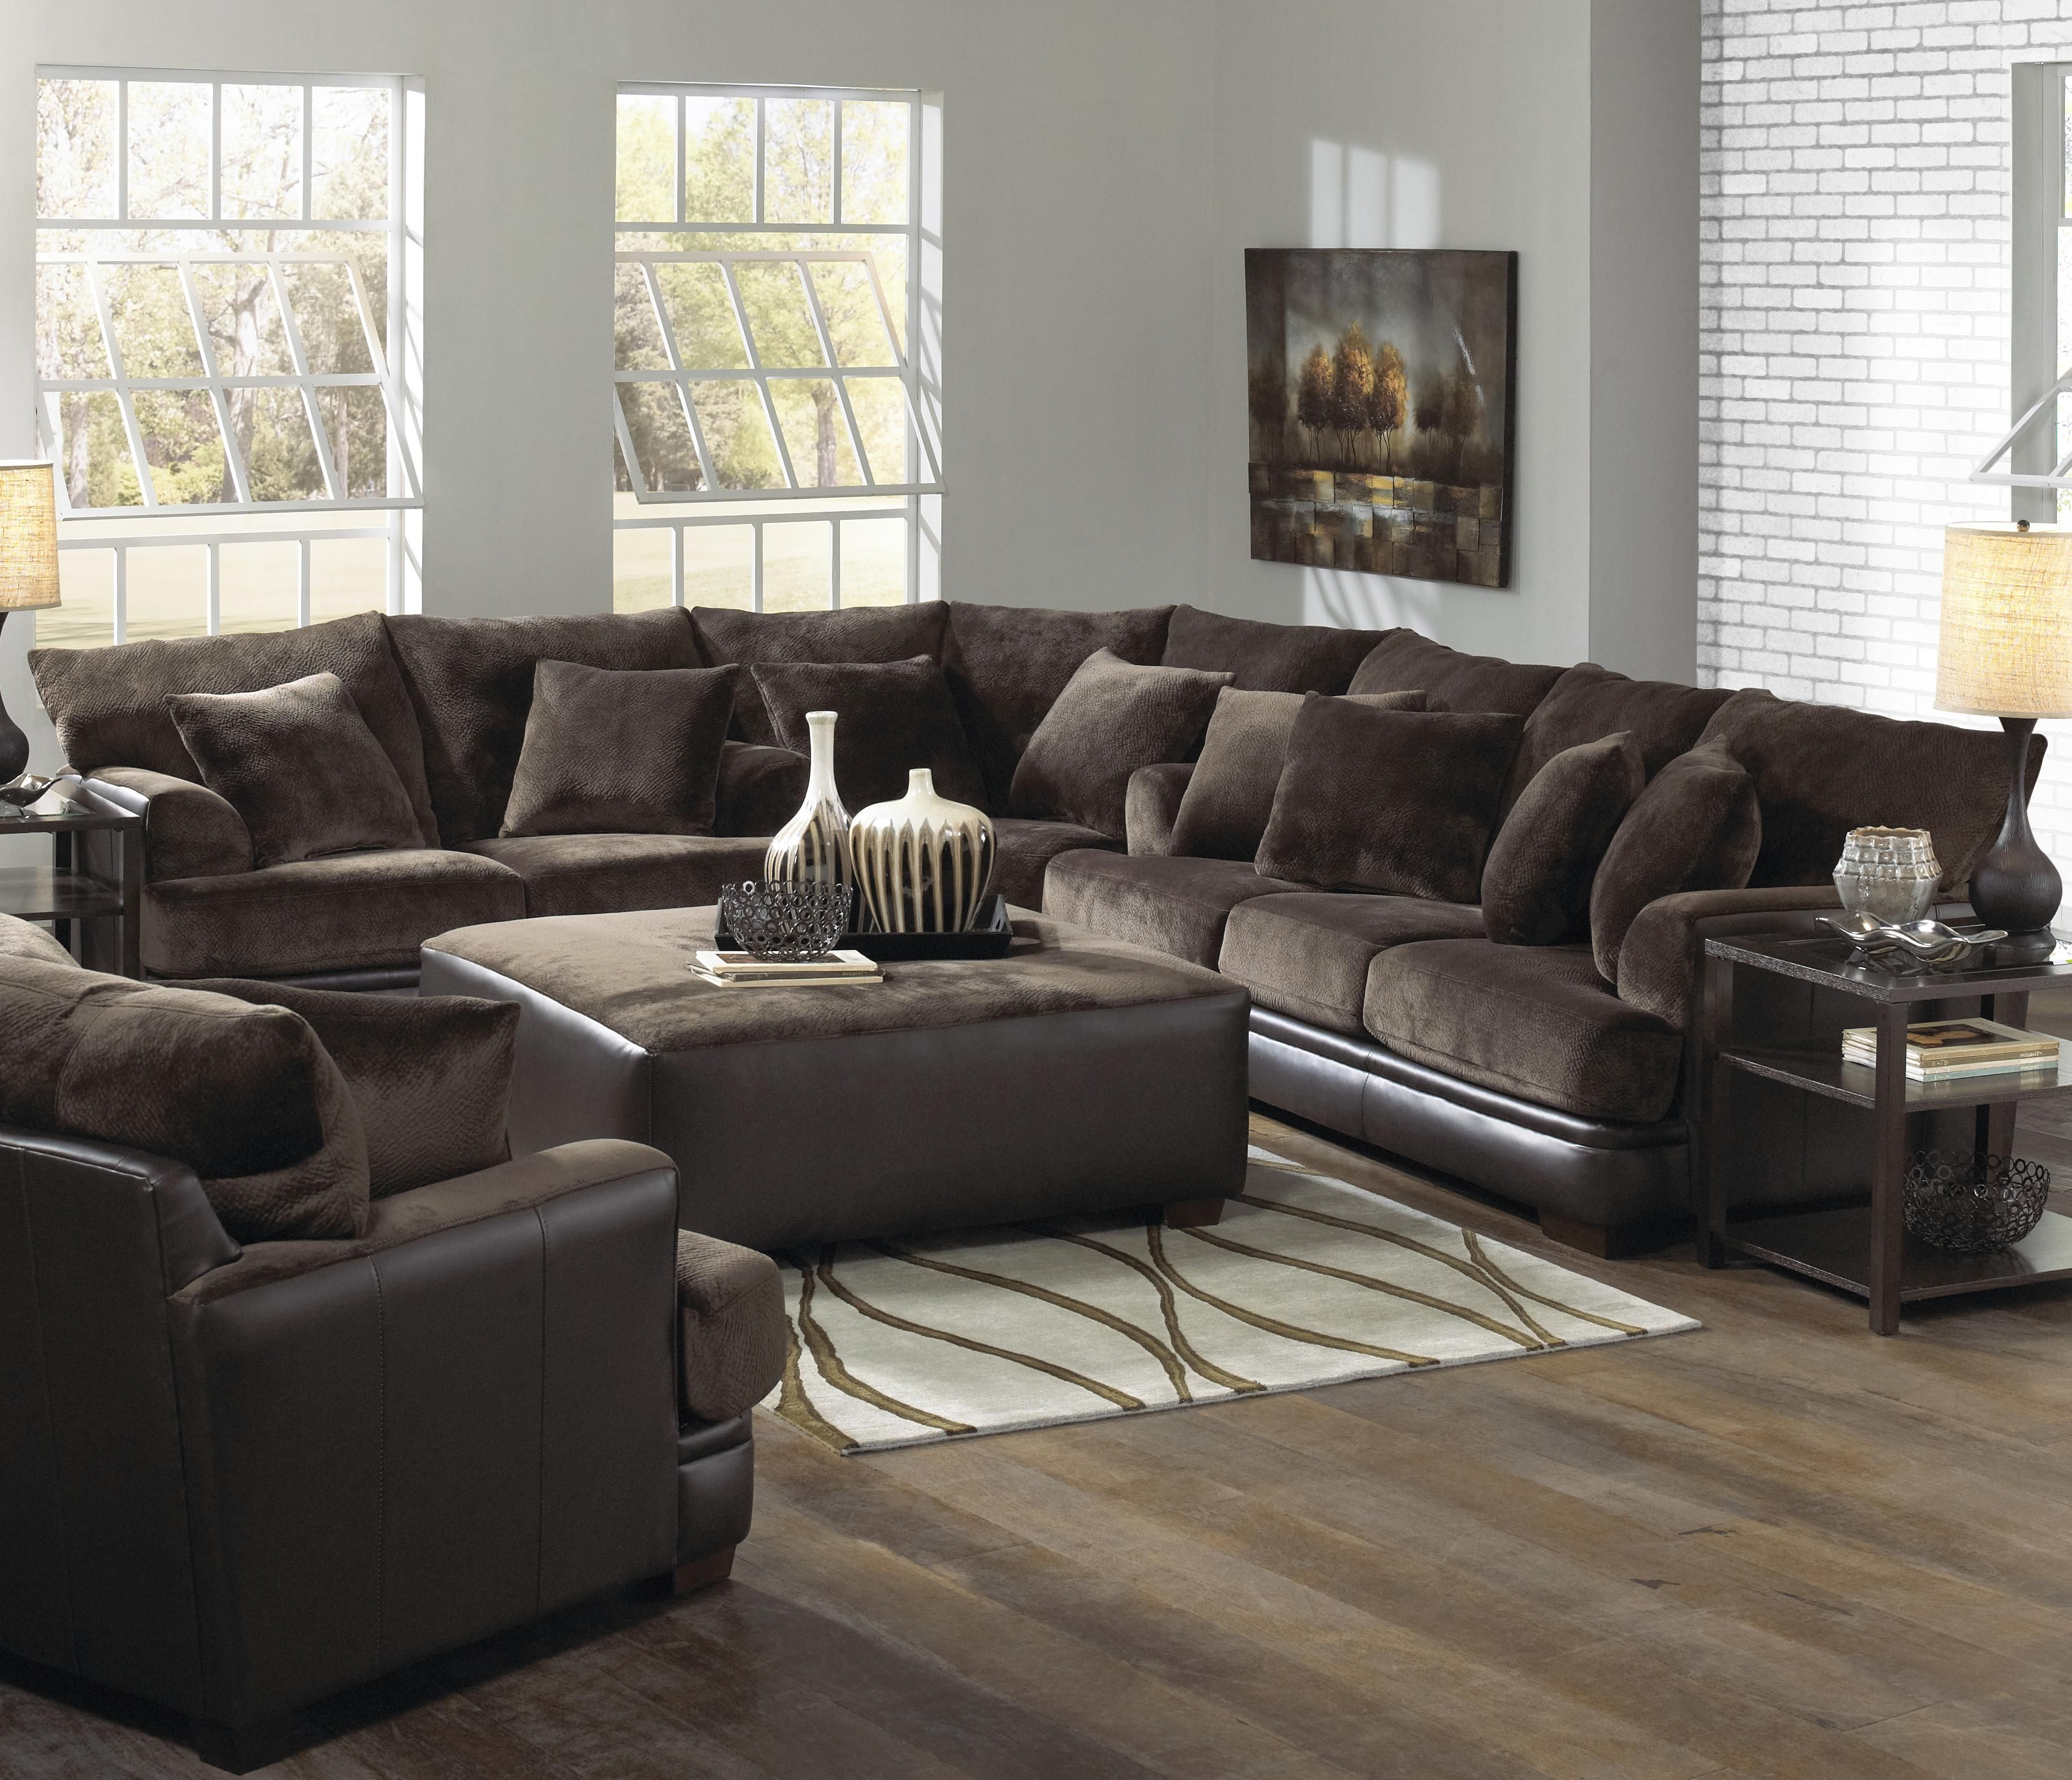 Sectional Couch Living Room Sets Golaria Com In 2020 Cheap